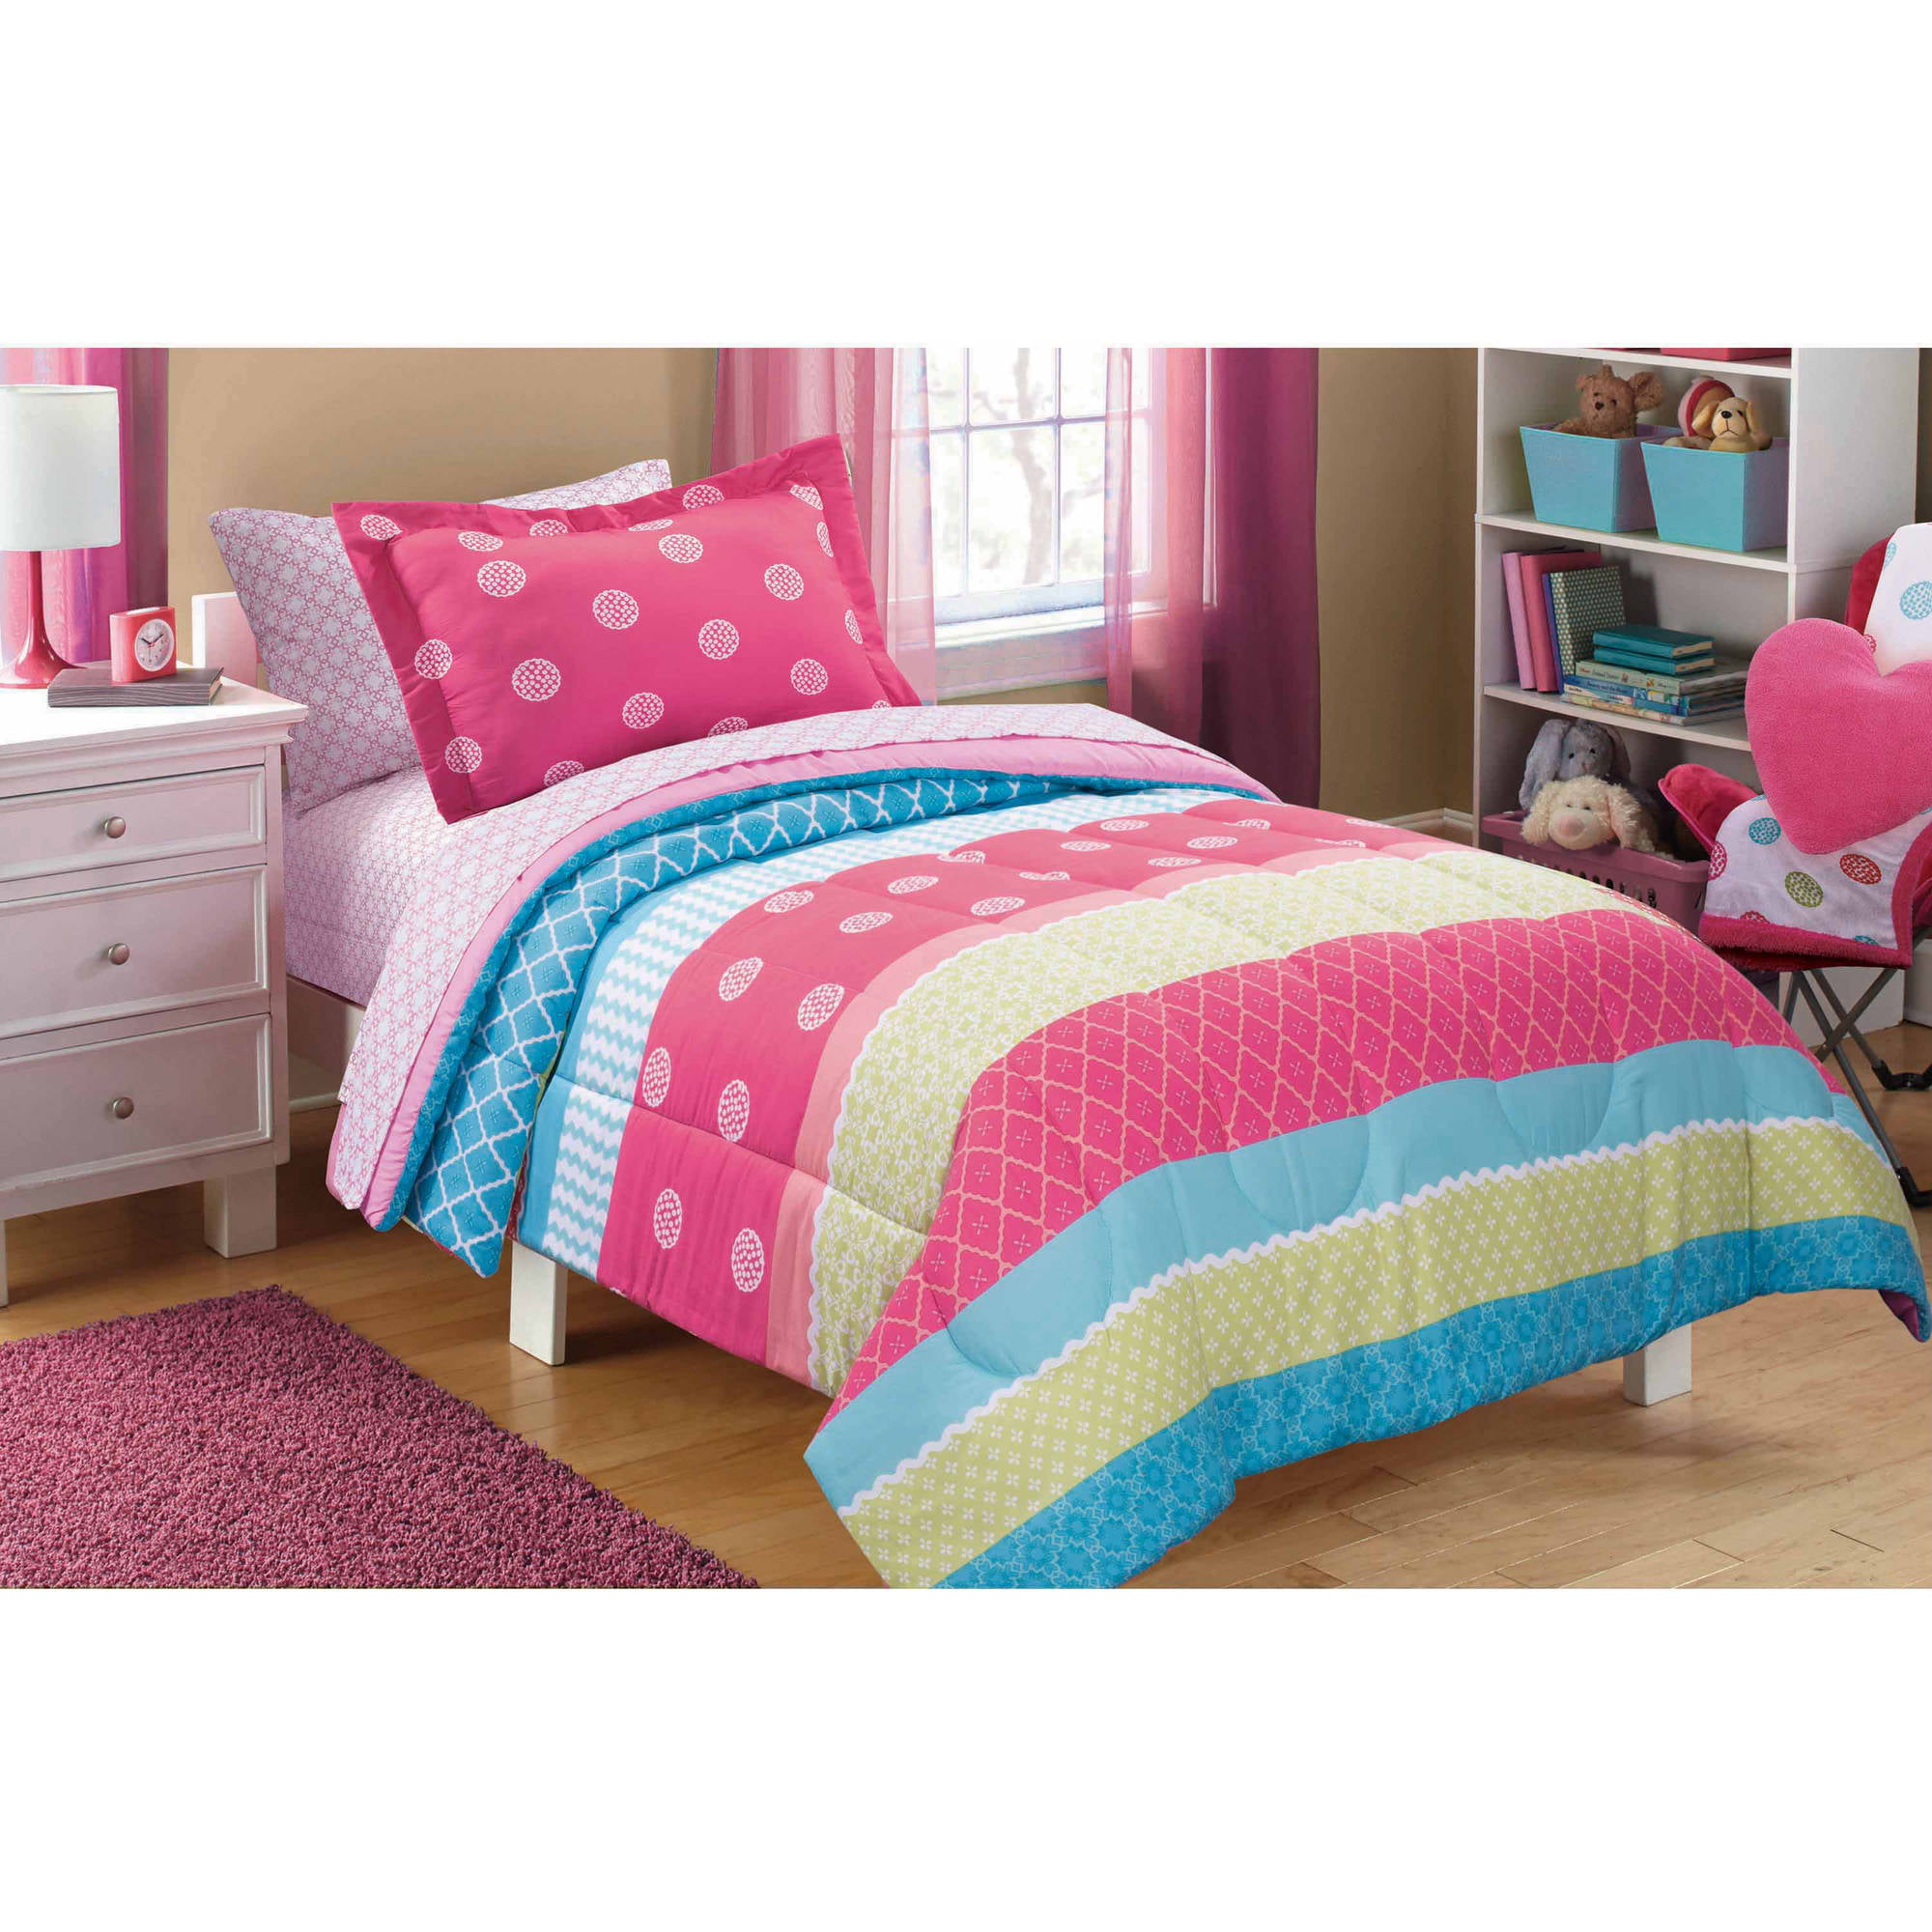 comforter girl bedding pin for bed bedrooms set frilly ruffles twin girls